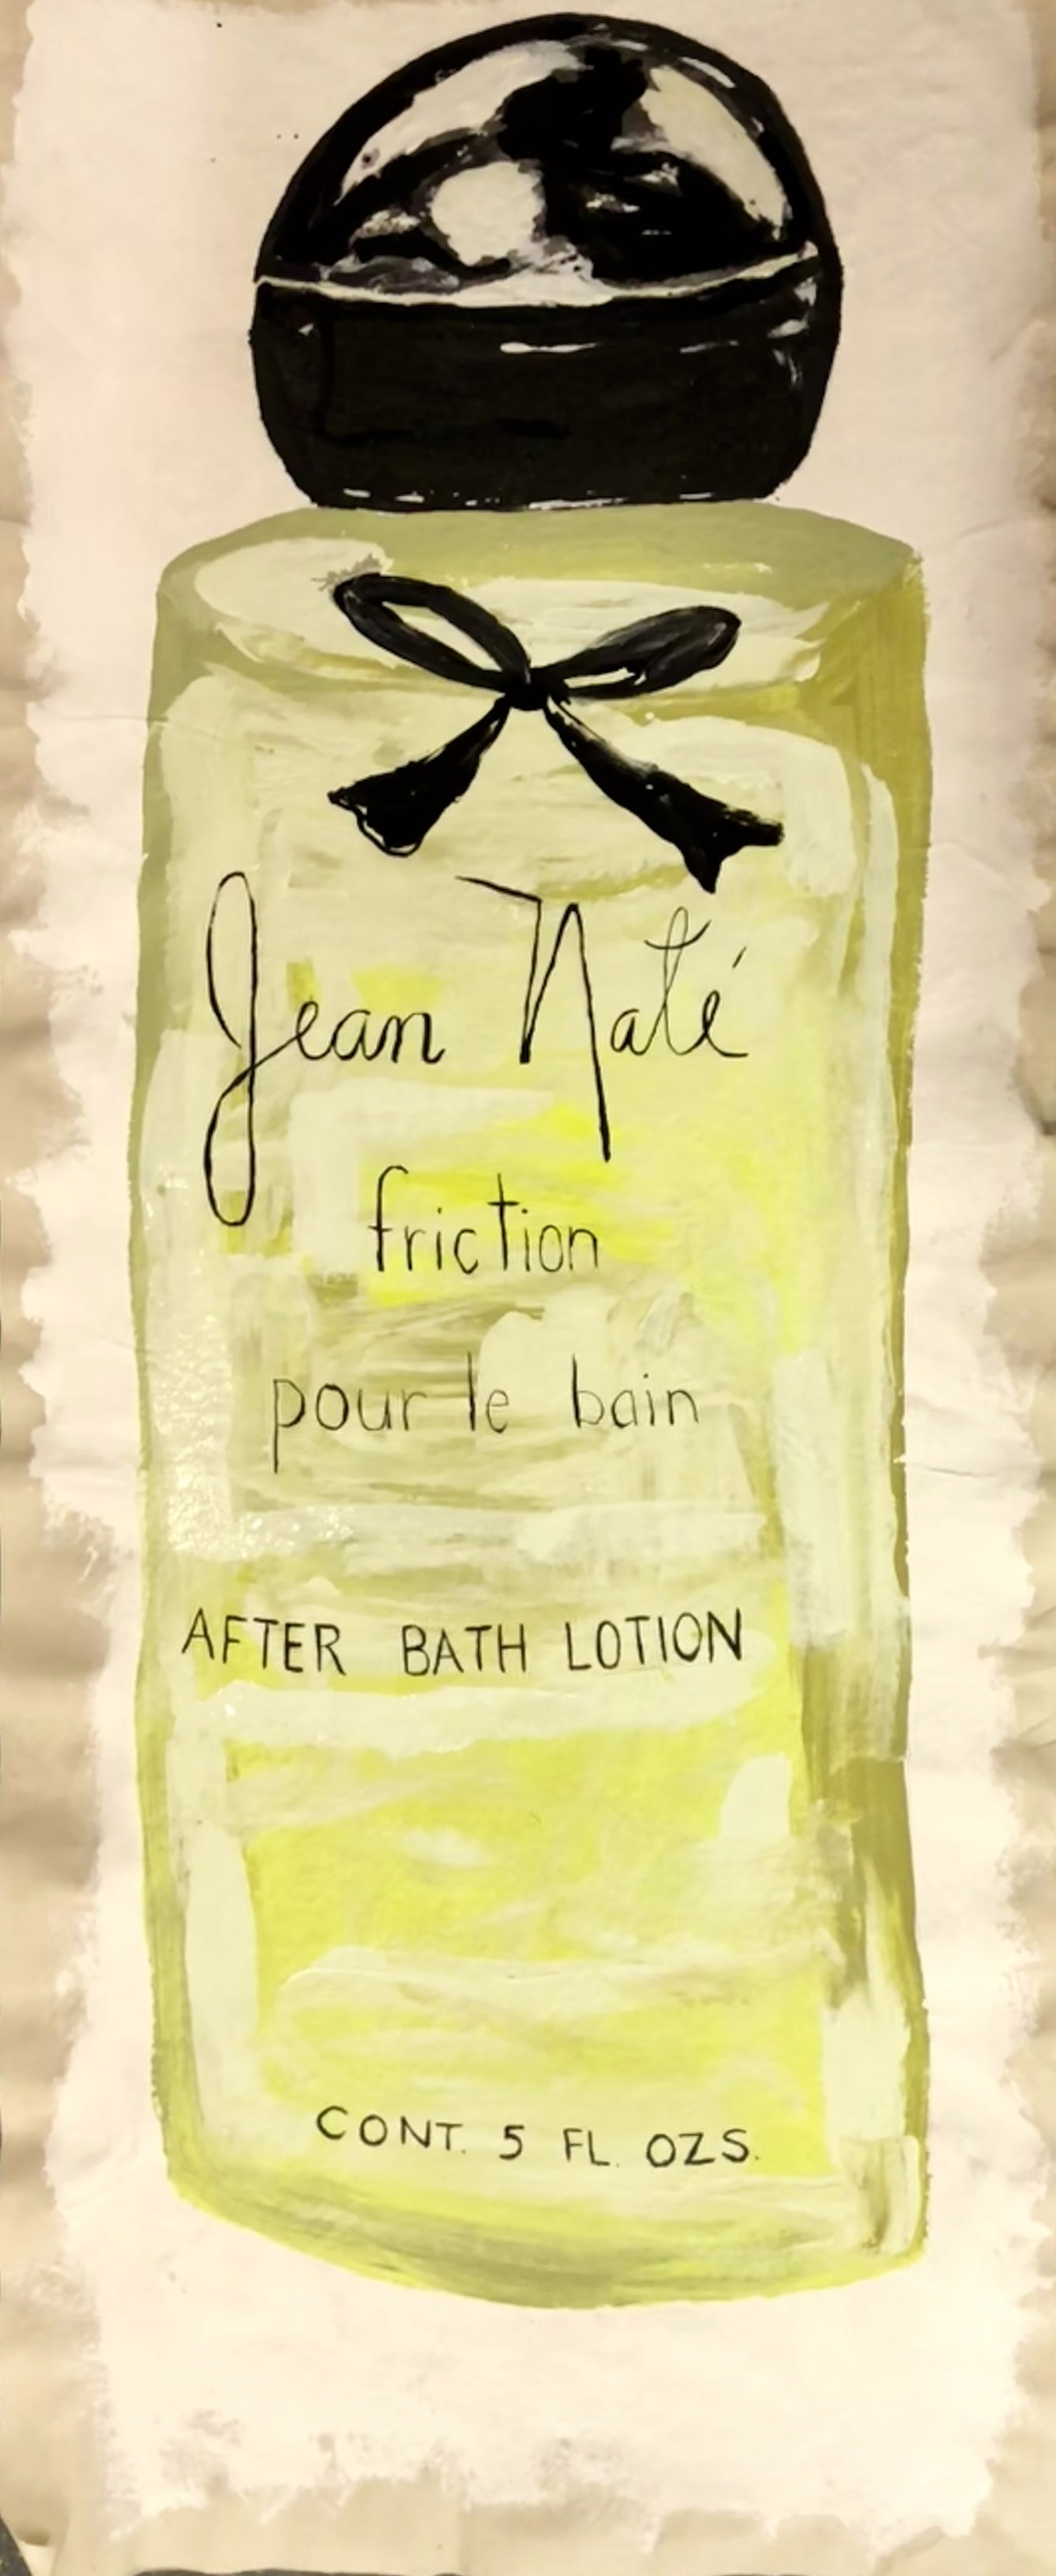 "COSMETICS SERIES-JEAN NATE' FRICTION-ACRLIC ON UNSTRETCHED CANVAS-6'X 30""-2018 $3000"